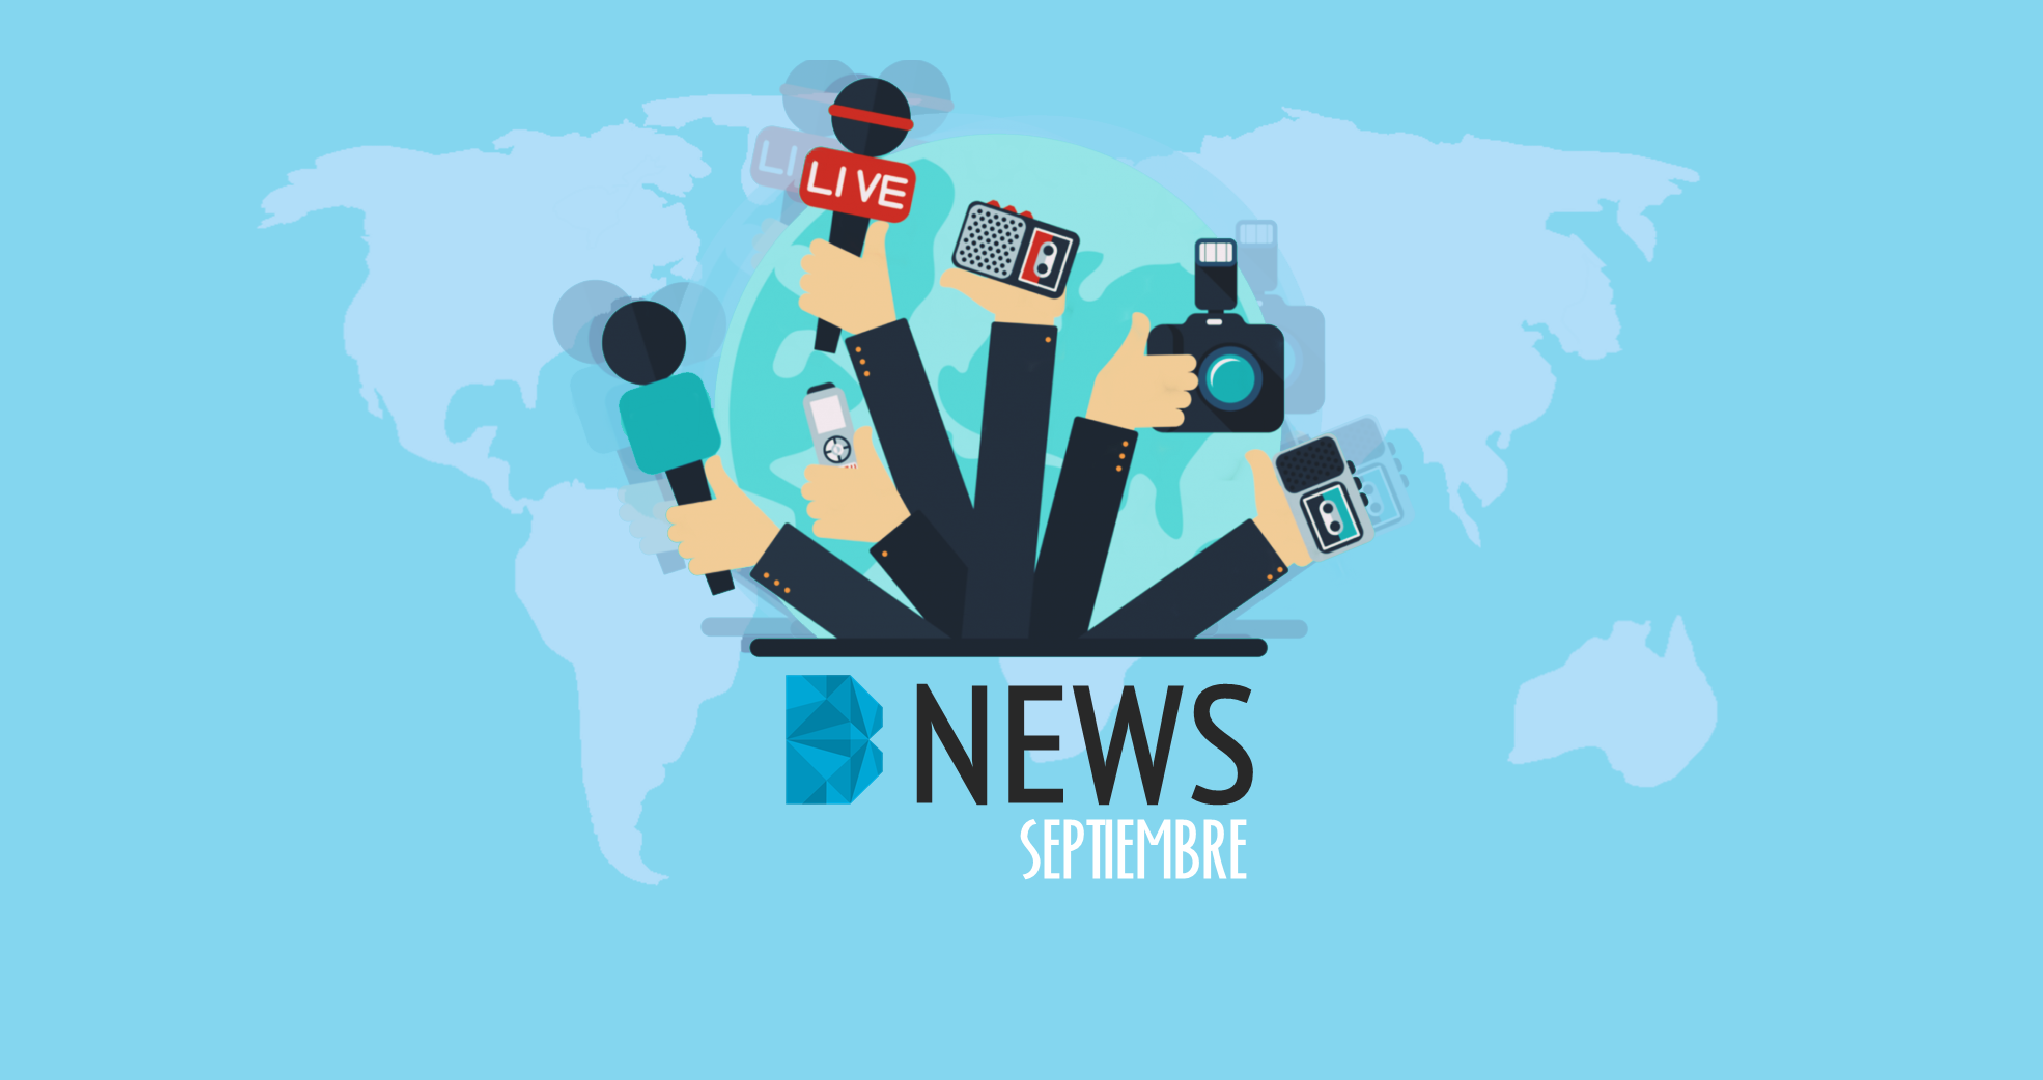 BNEWS-SEPTIEMBRE 2018